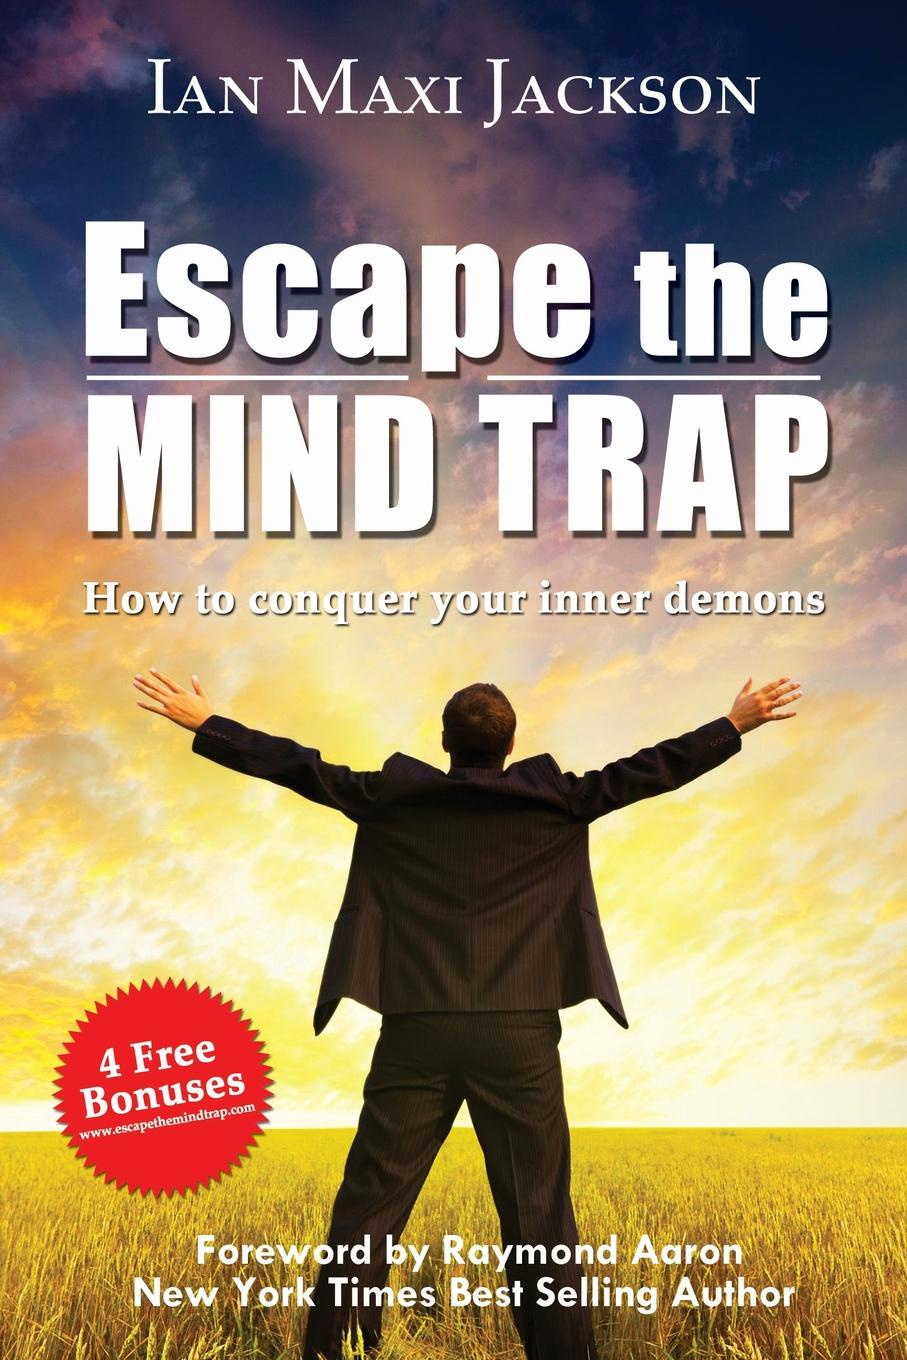 Ian Dr Jackson Escape the Mind Trap. How to Conquer Your Inner Demons how to free your mind